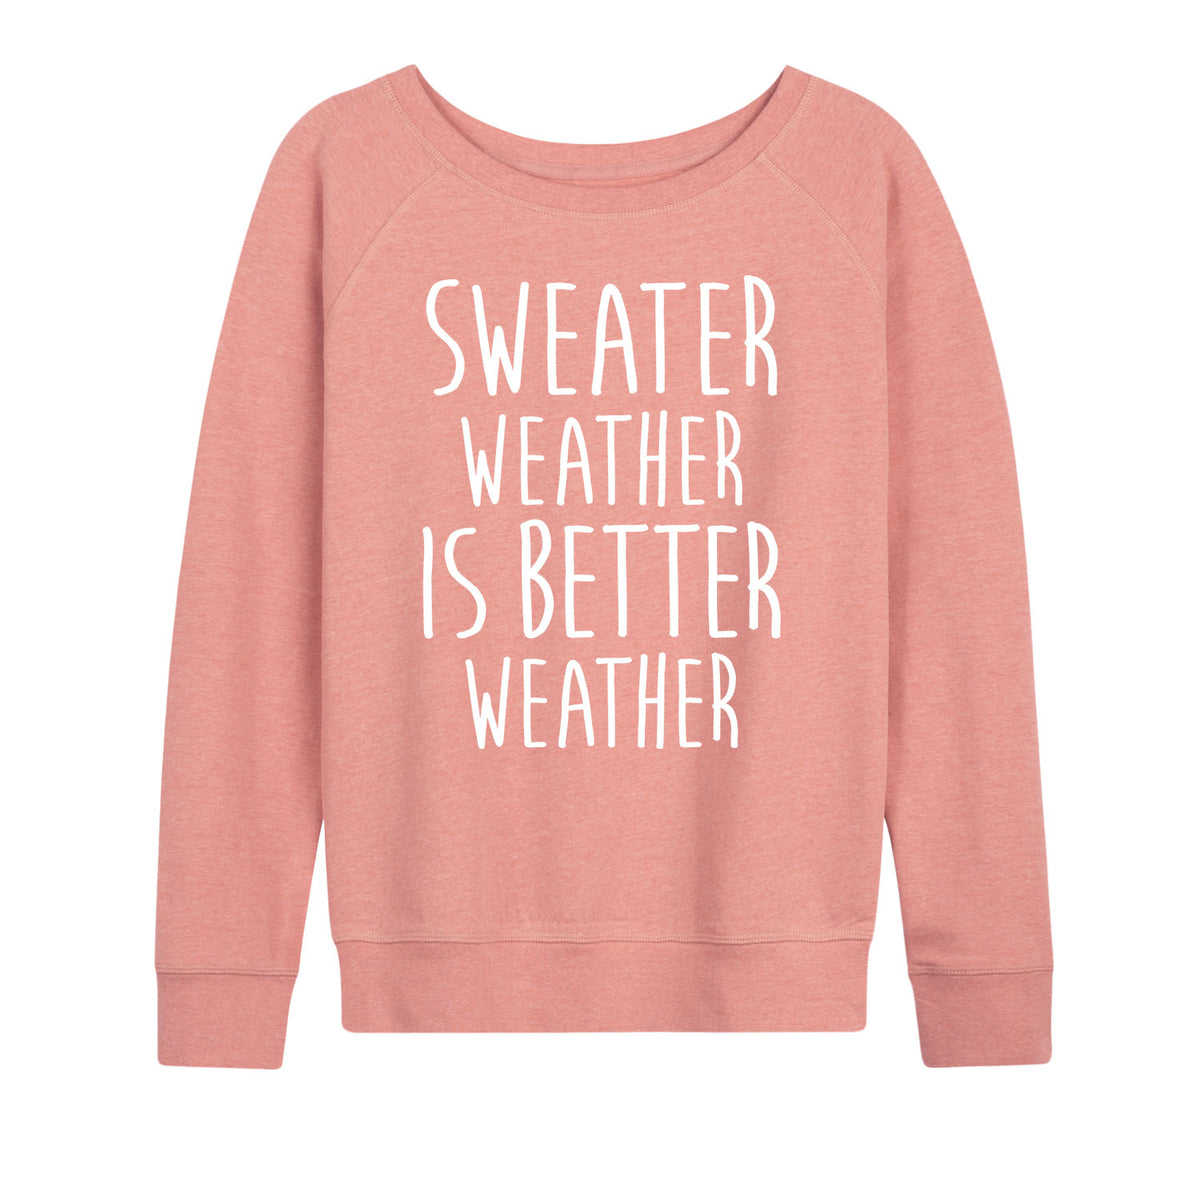 Sweater Weather Is Better Weather - Women's Slouchy